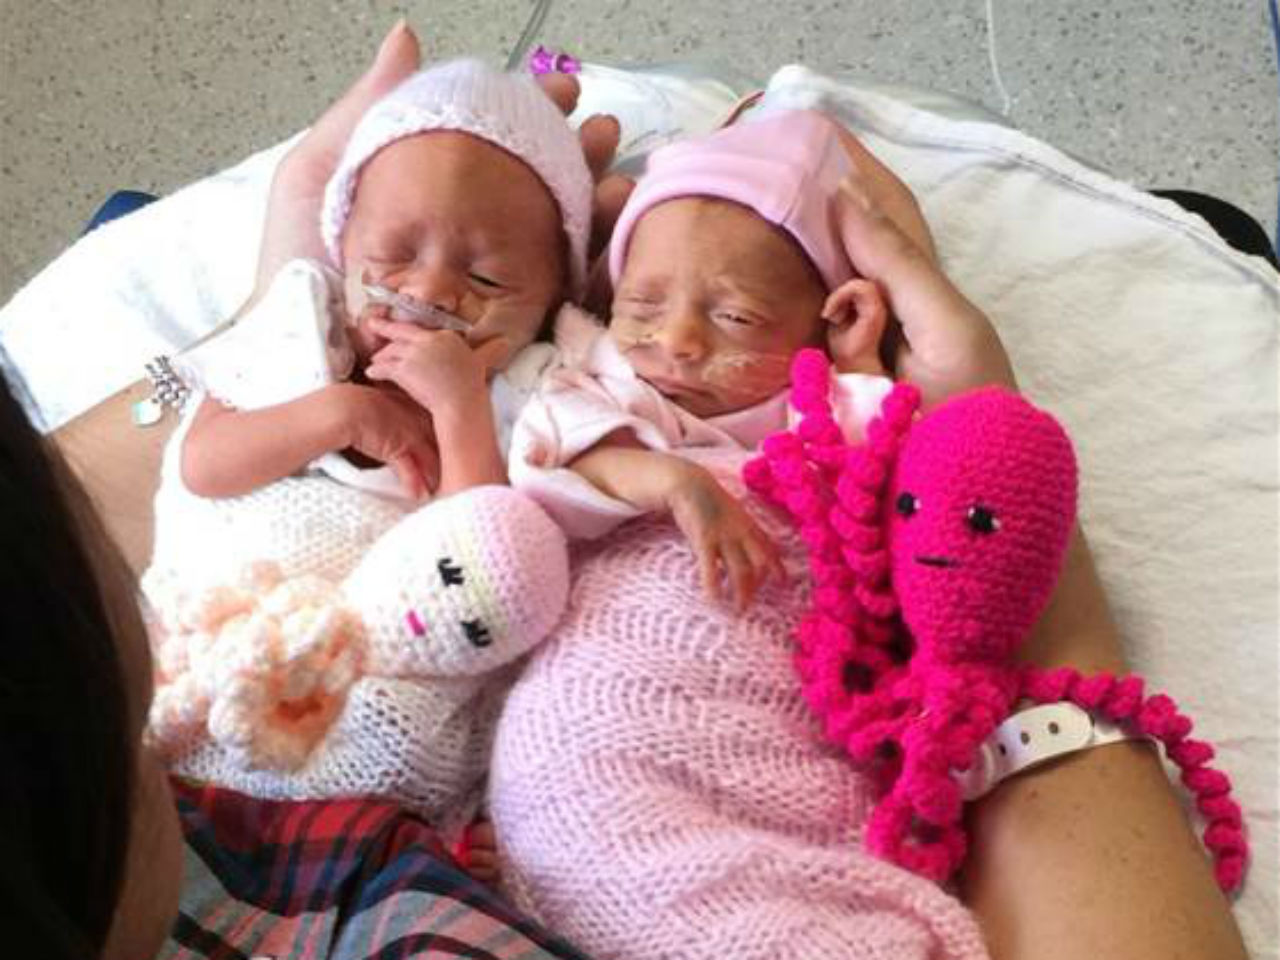 Twin preemies snuggling with crochet octopuses